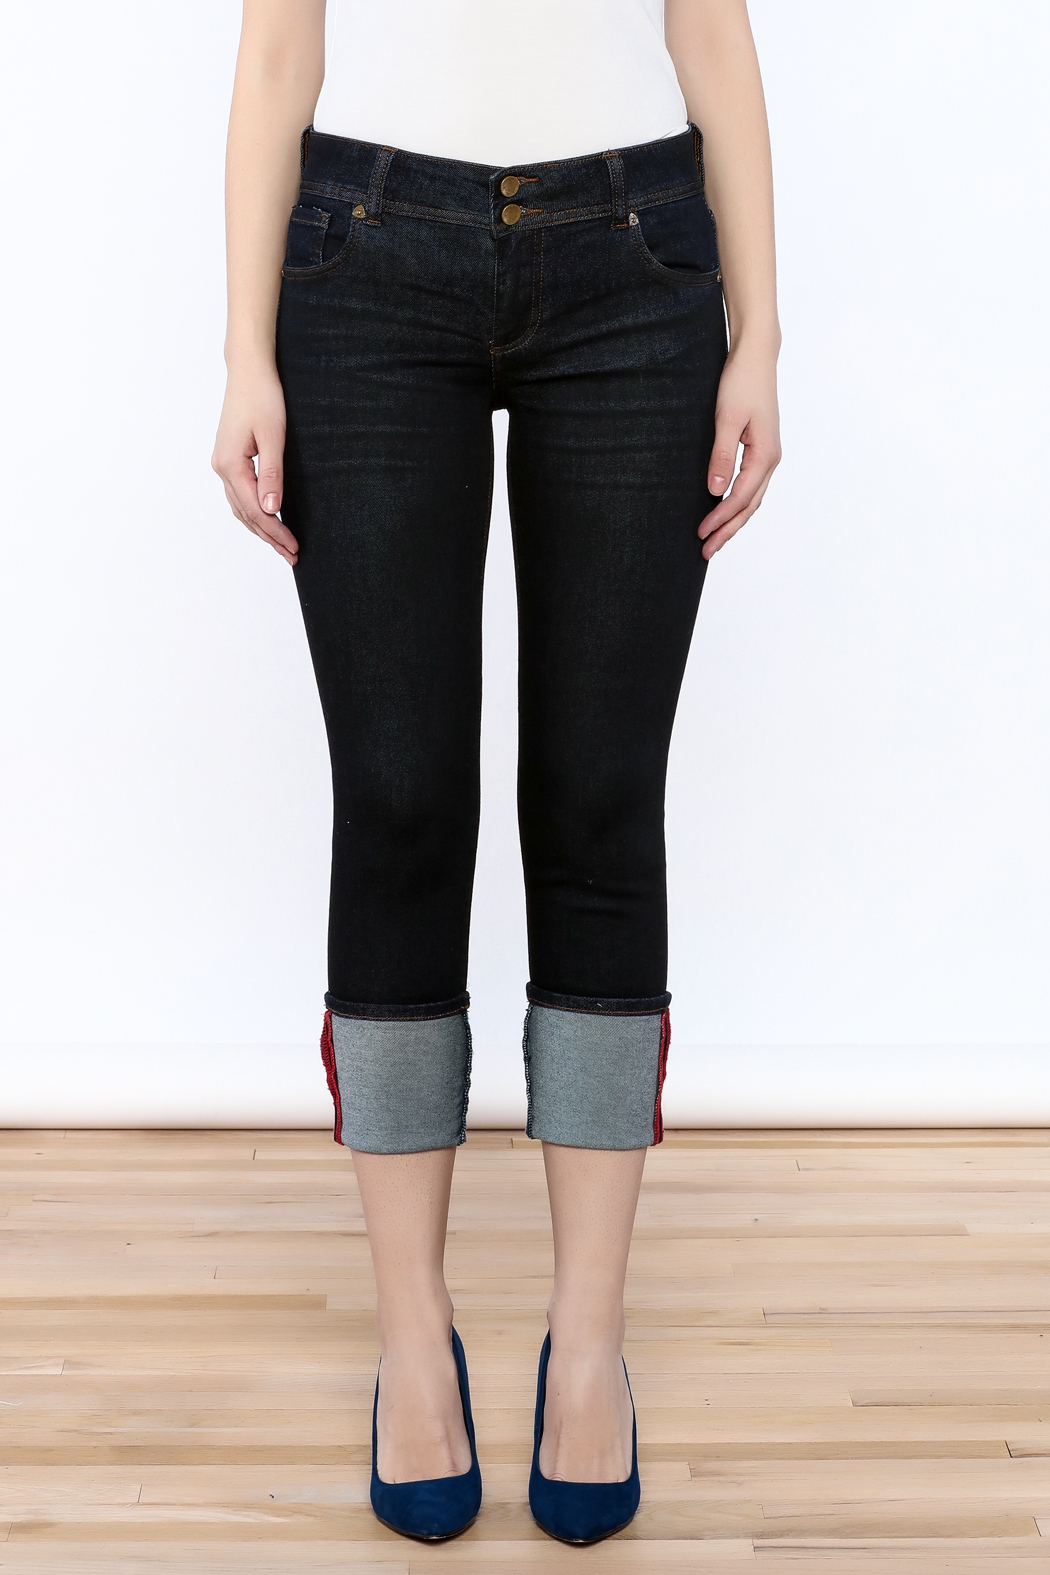 Kut from the Kloth Cameron Skinny Jeans - Side Cropped Image